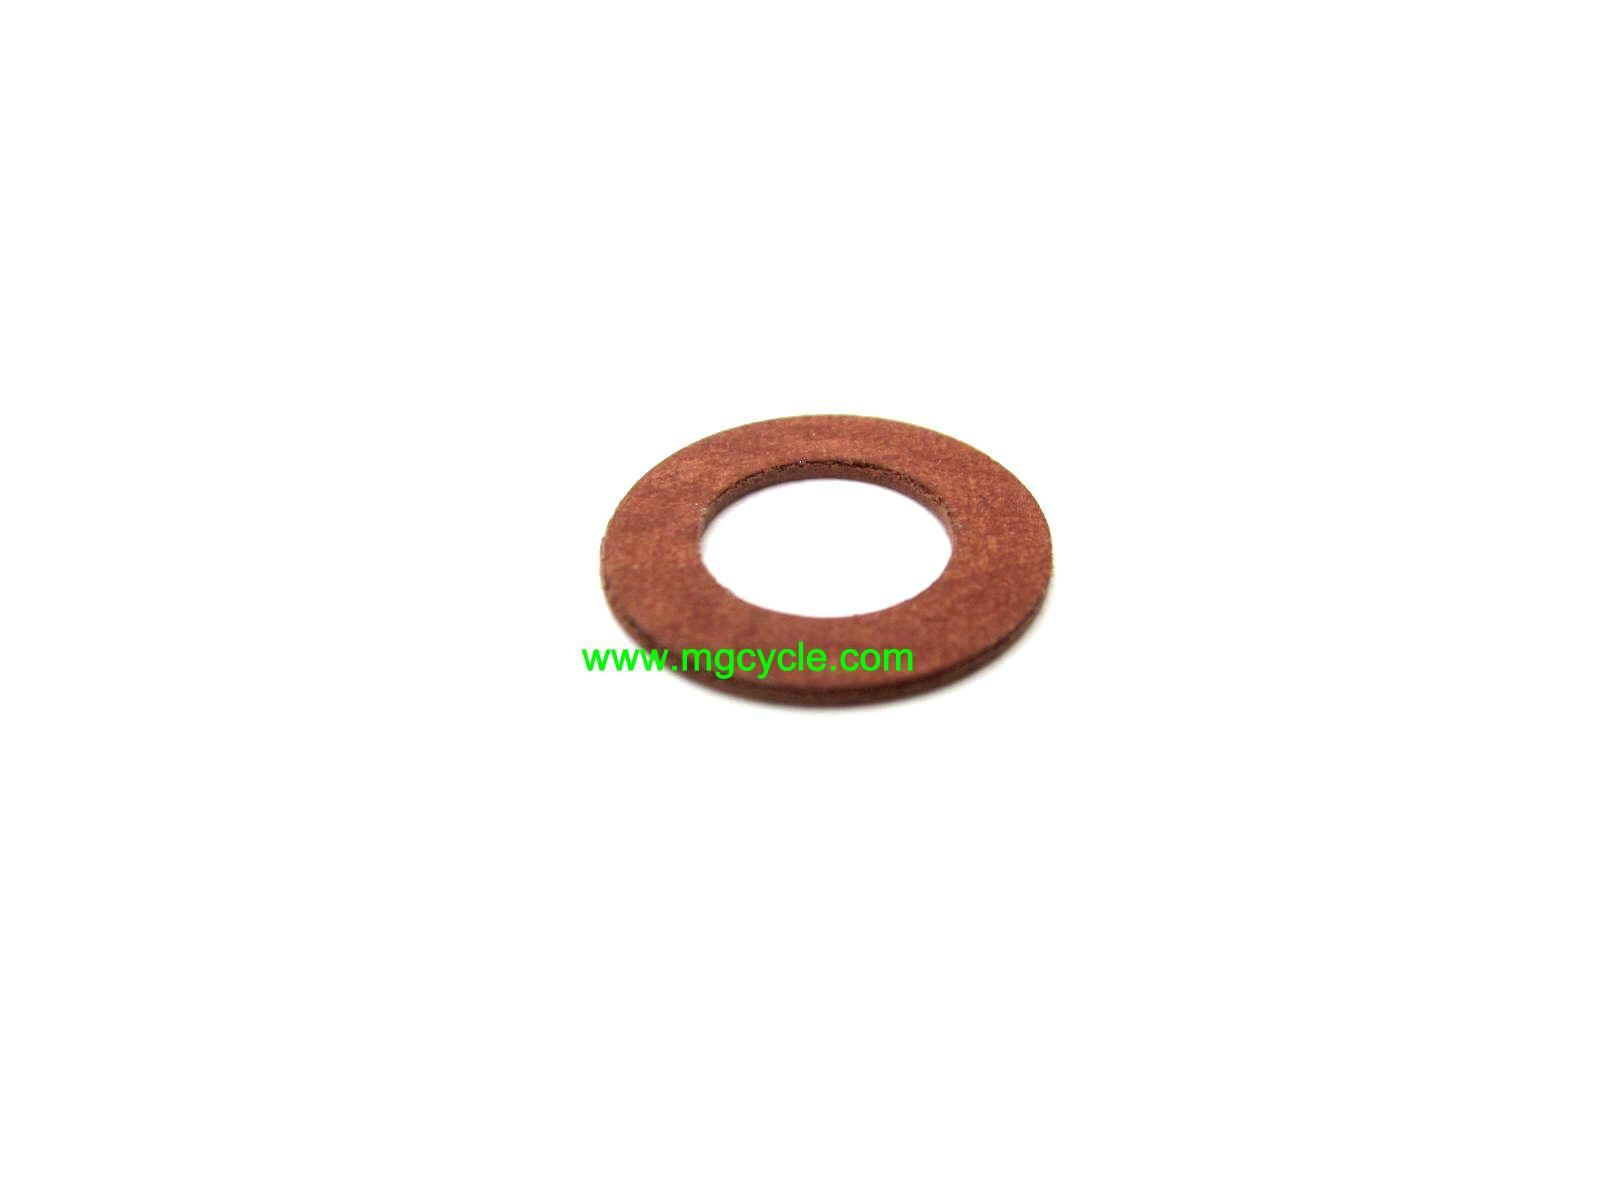 Fiber sealing washer 10mm level and drain plugs trans rear drive